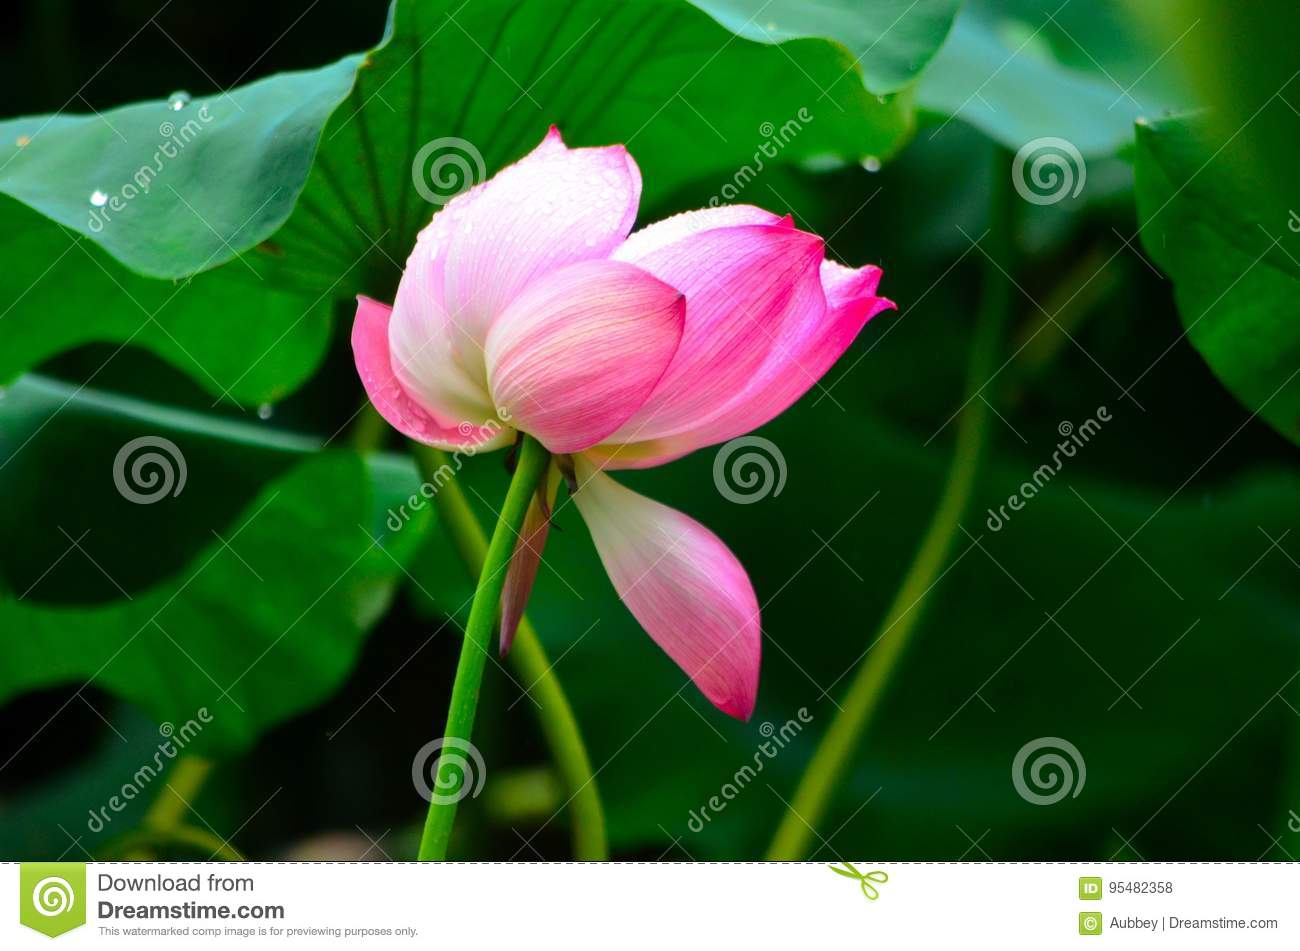 The Lotus Flower In The Rain Stock Photo Image Of Create